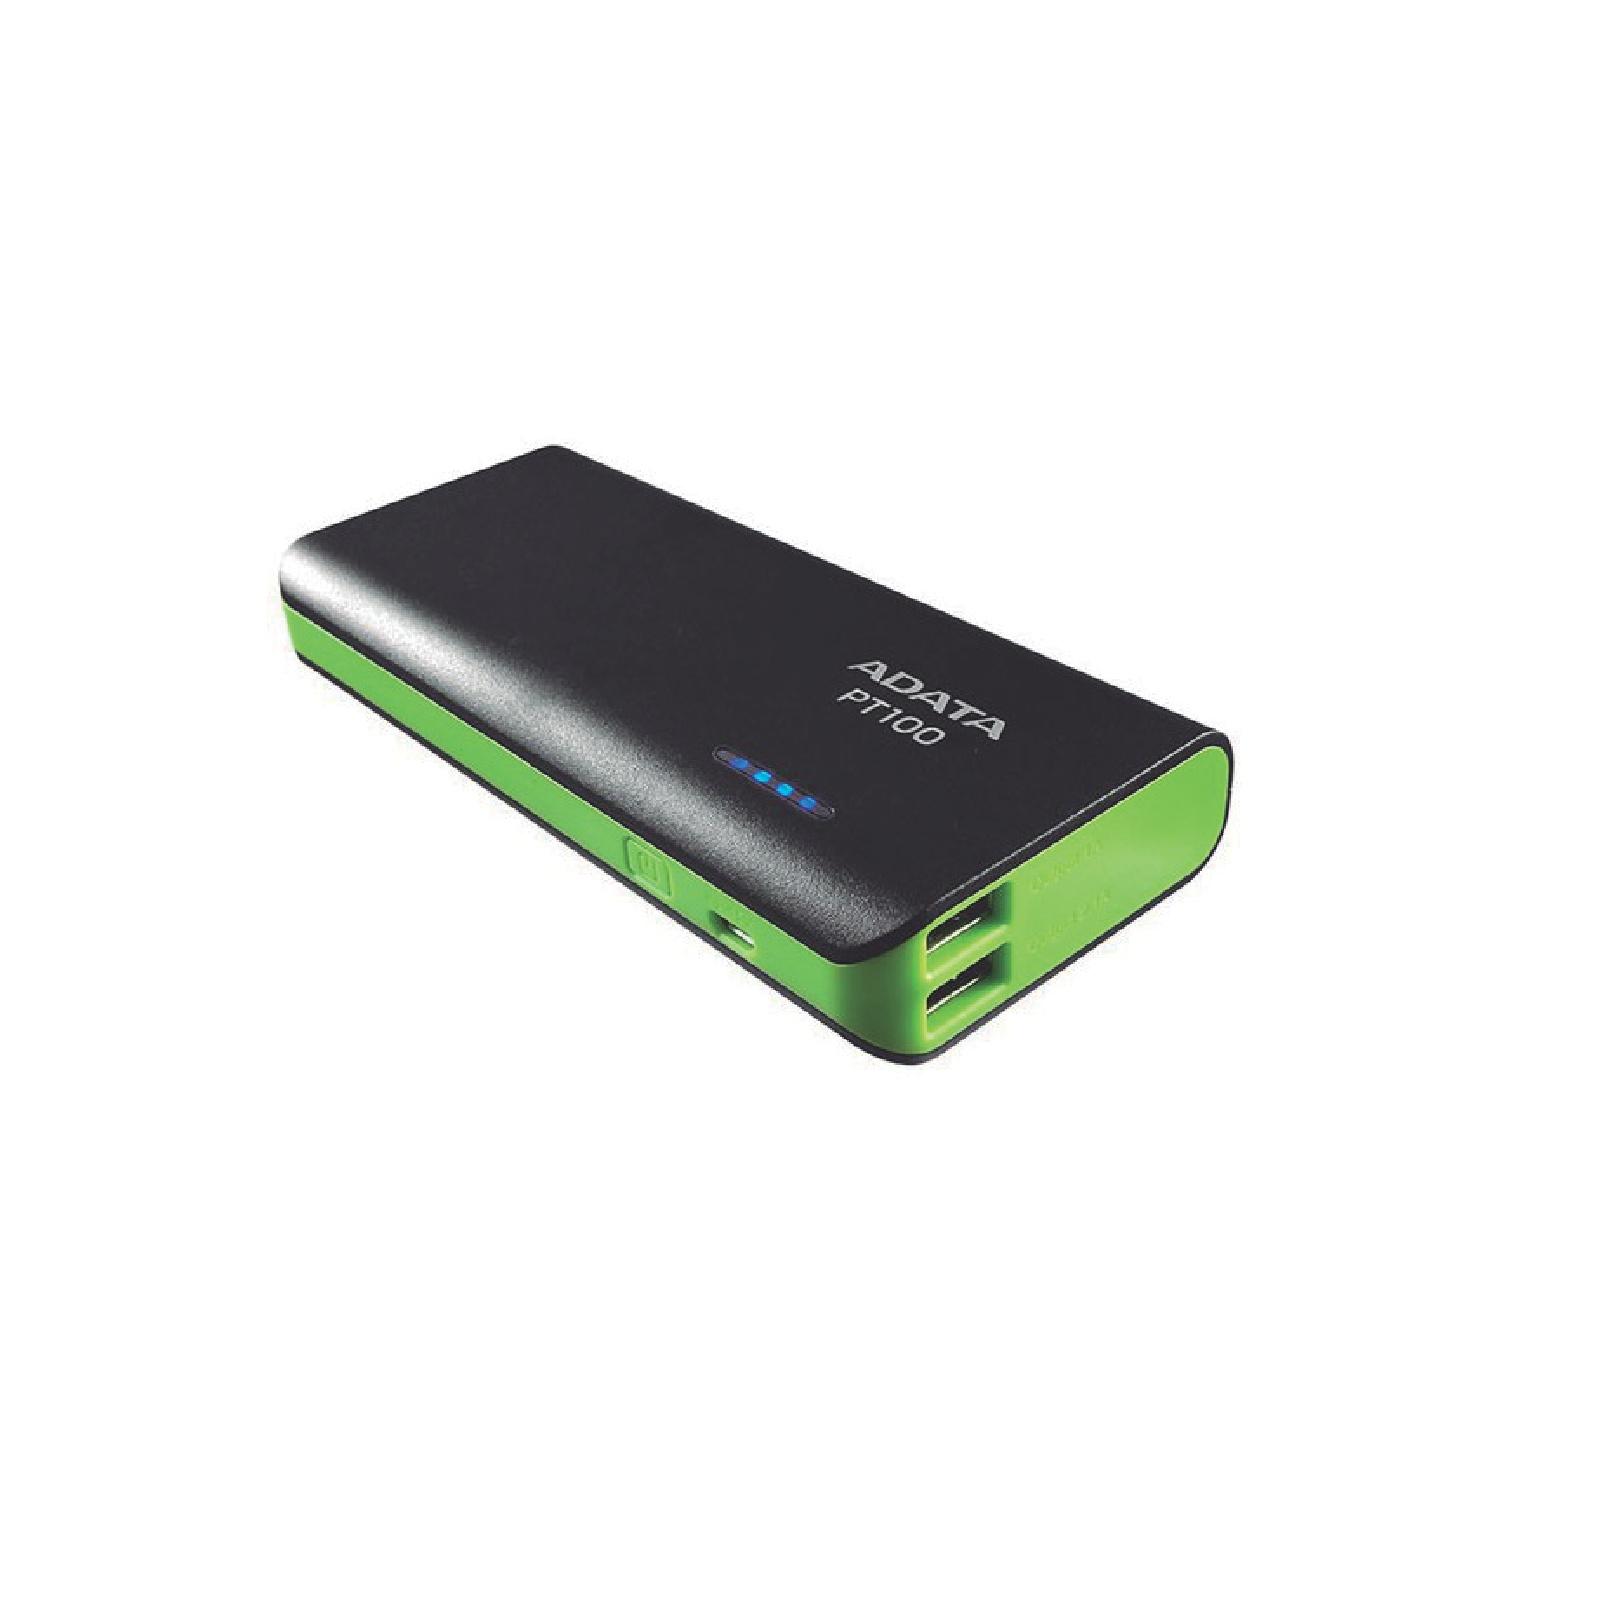 Power Bank 10,00mah Adata Pt100